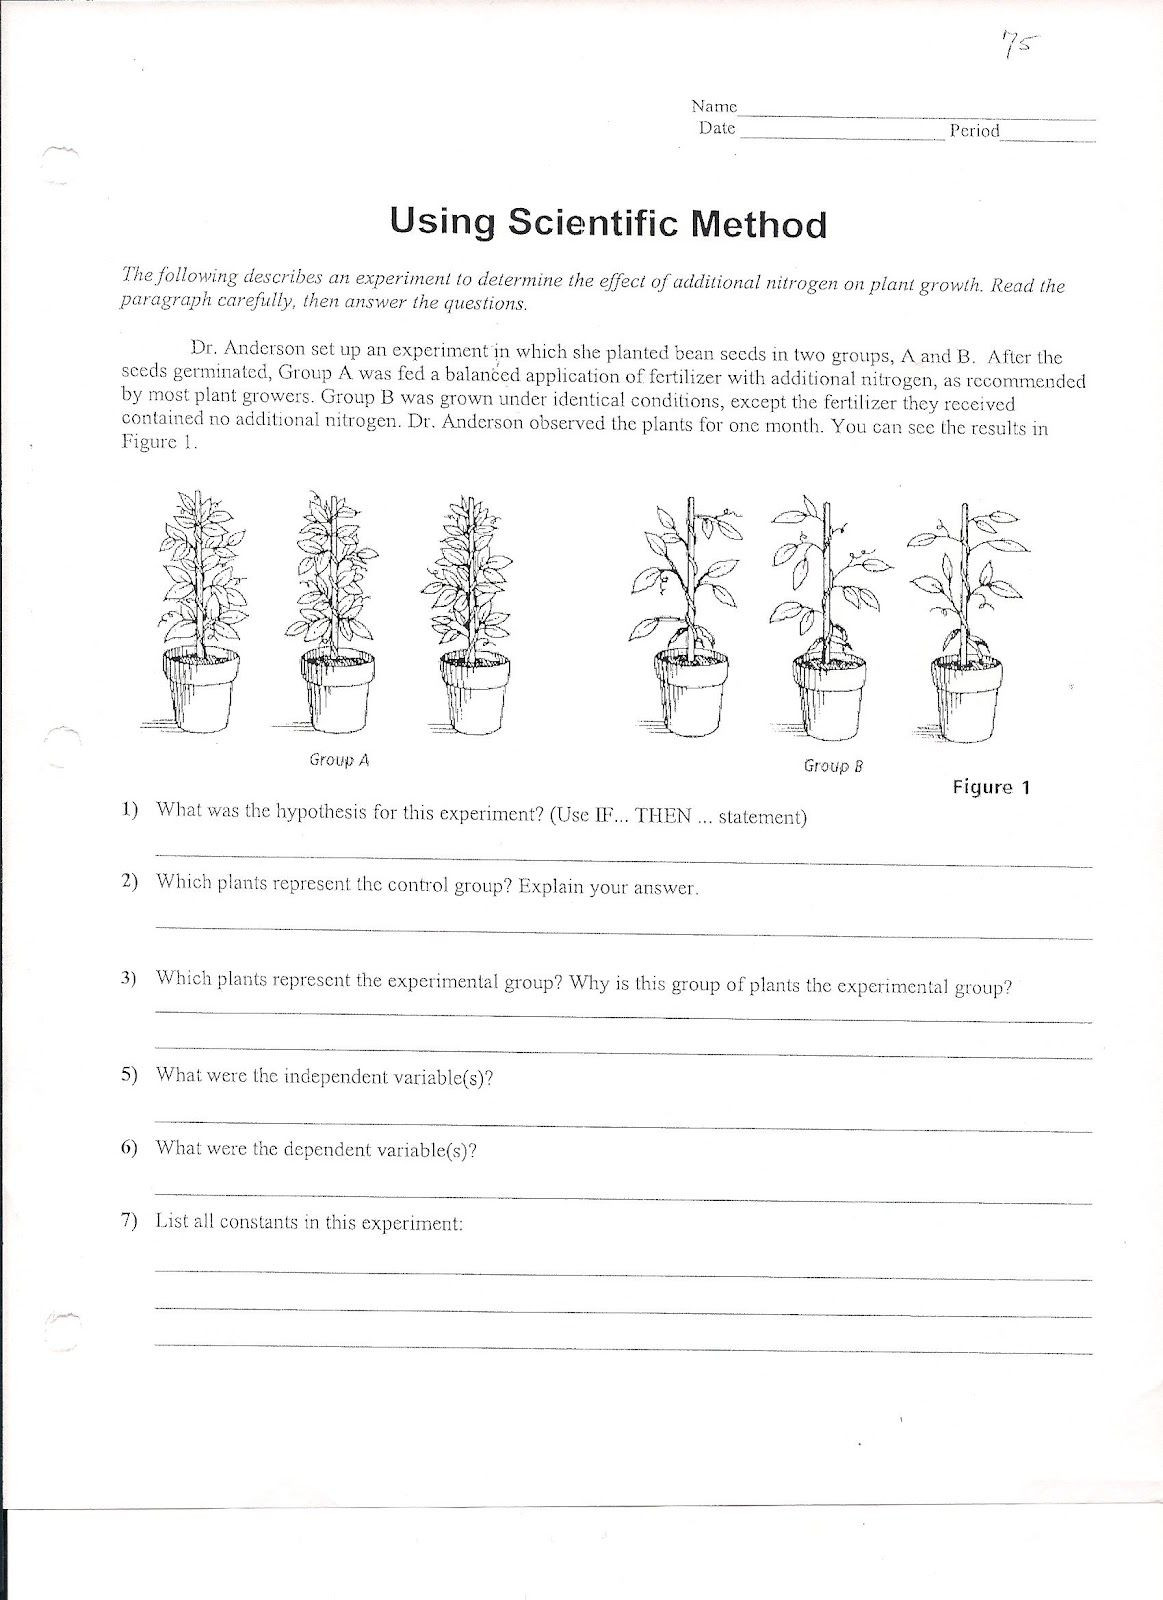 Scientific Method Worksheets High School Using Scientific Method Worksheet 1 163—1 600 Pixels